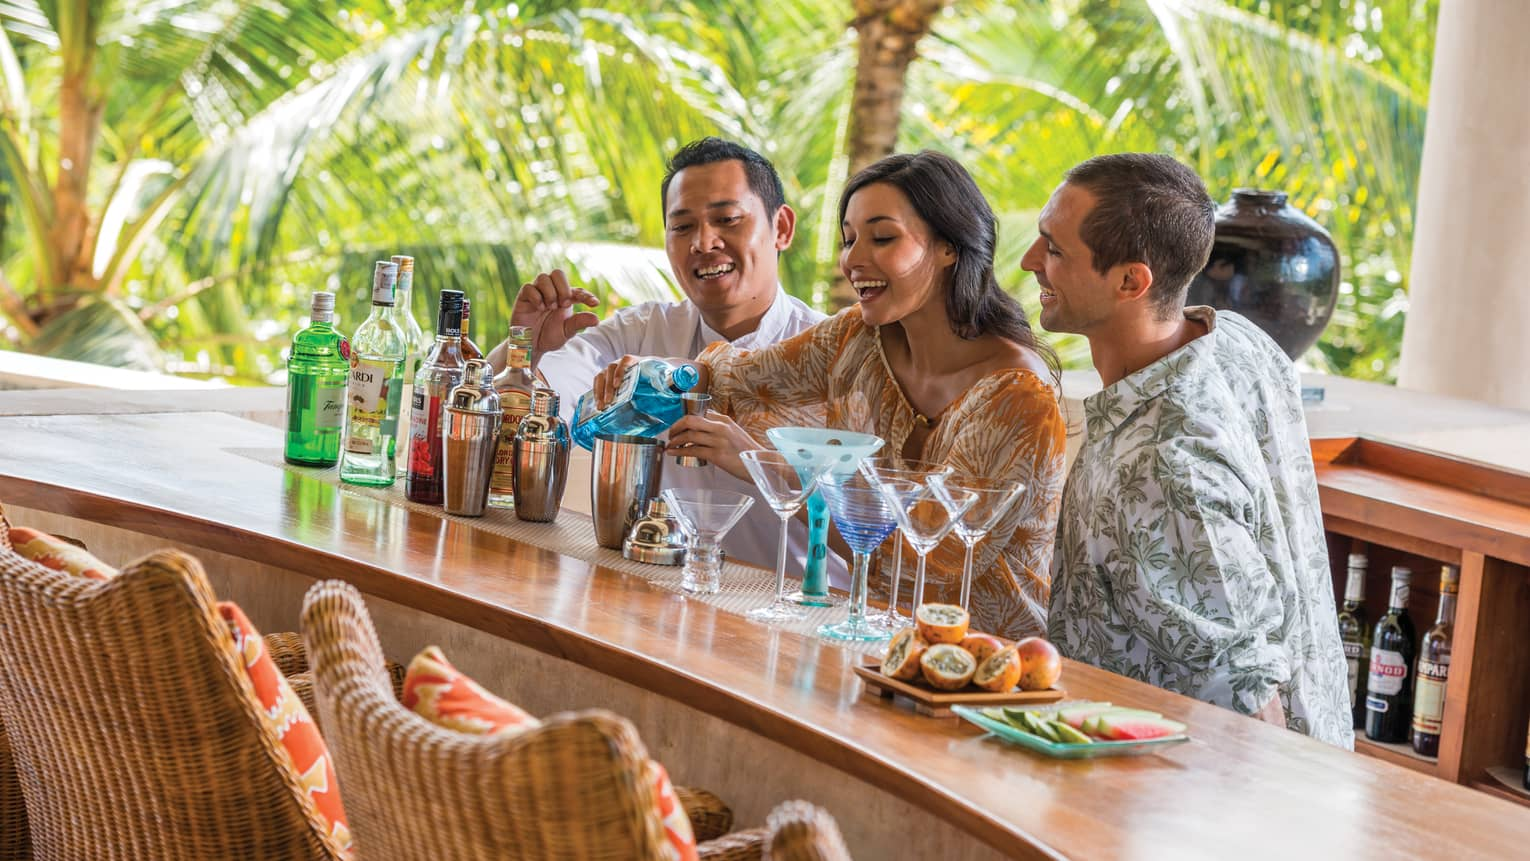 Guests learning how to mix drinks at a cocktail class in Bali